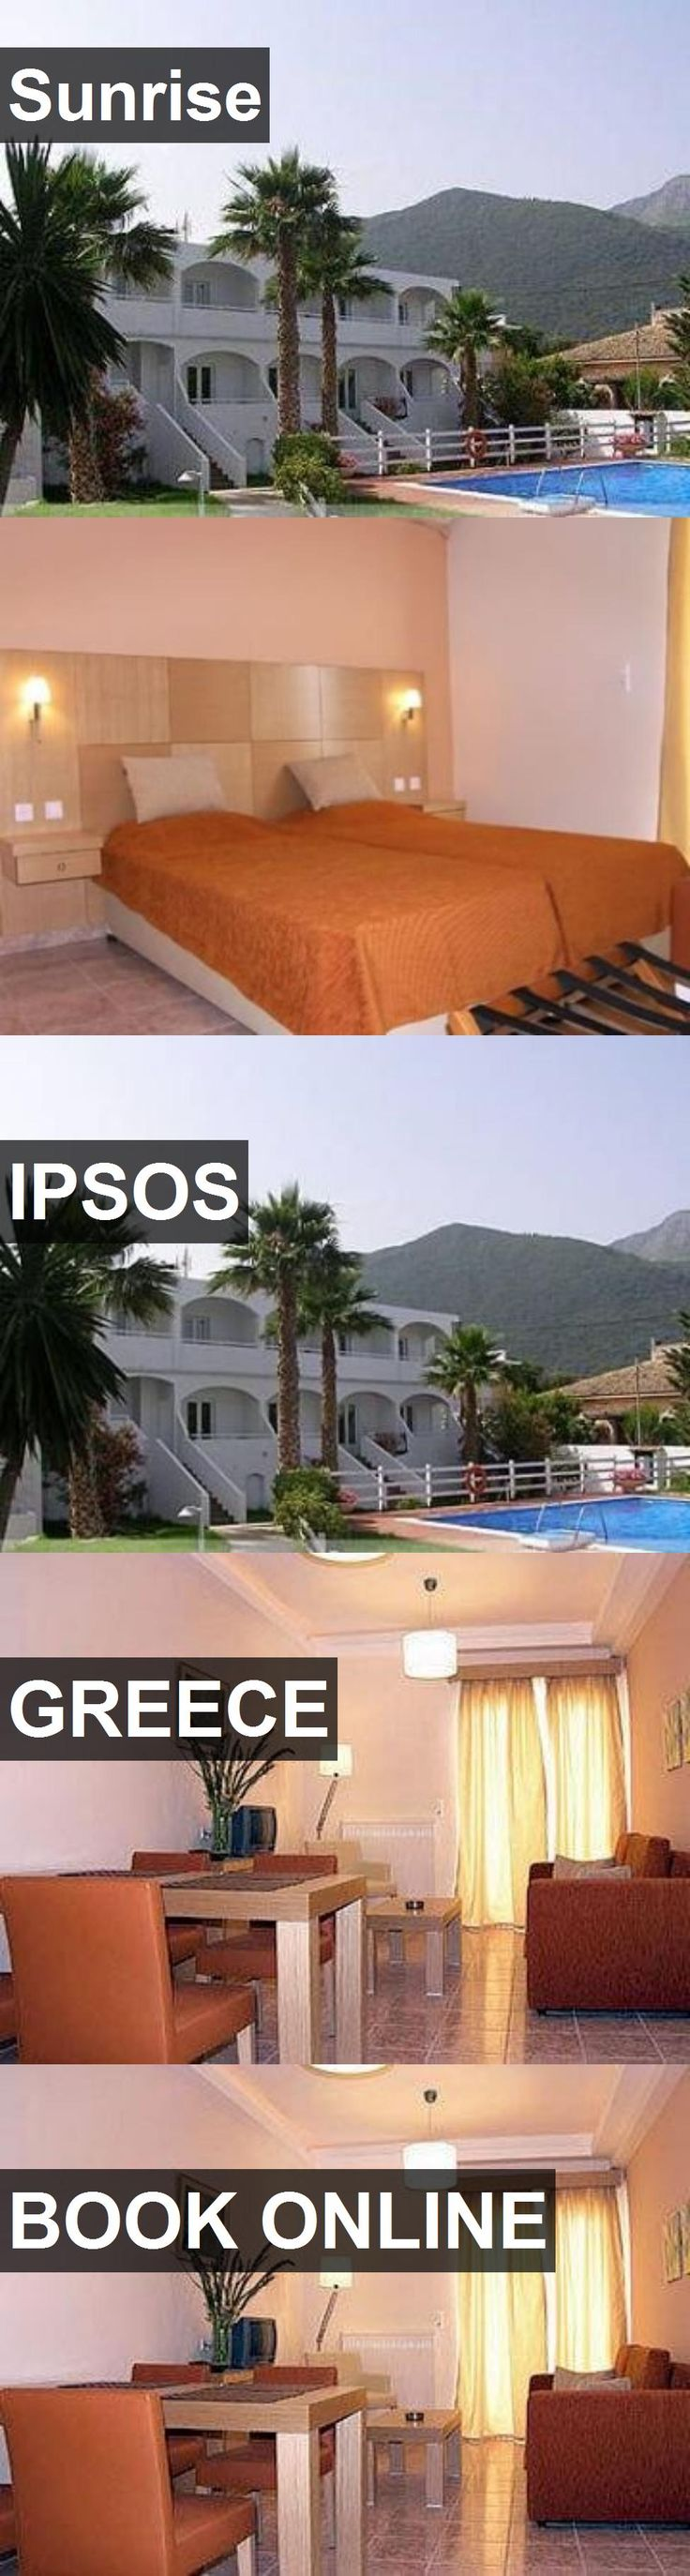 Hotel Sunrise in Ipsos, Greece. For more information, photos, reviews and best prices please follow the link. #Greece #Ipsos #Sunrise #hotel #travel #vacation